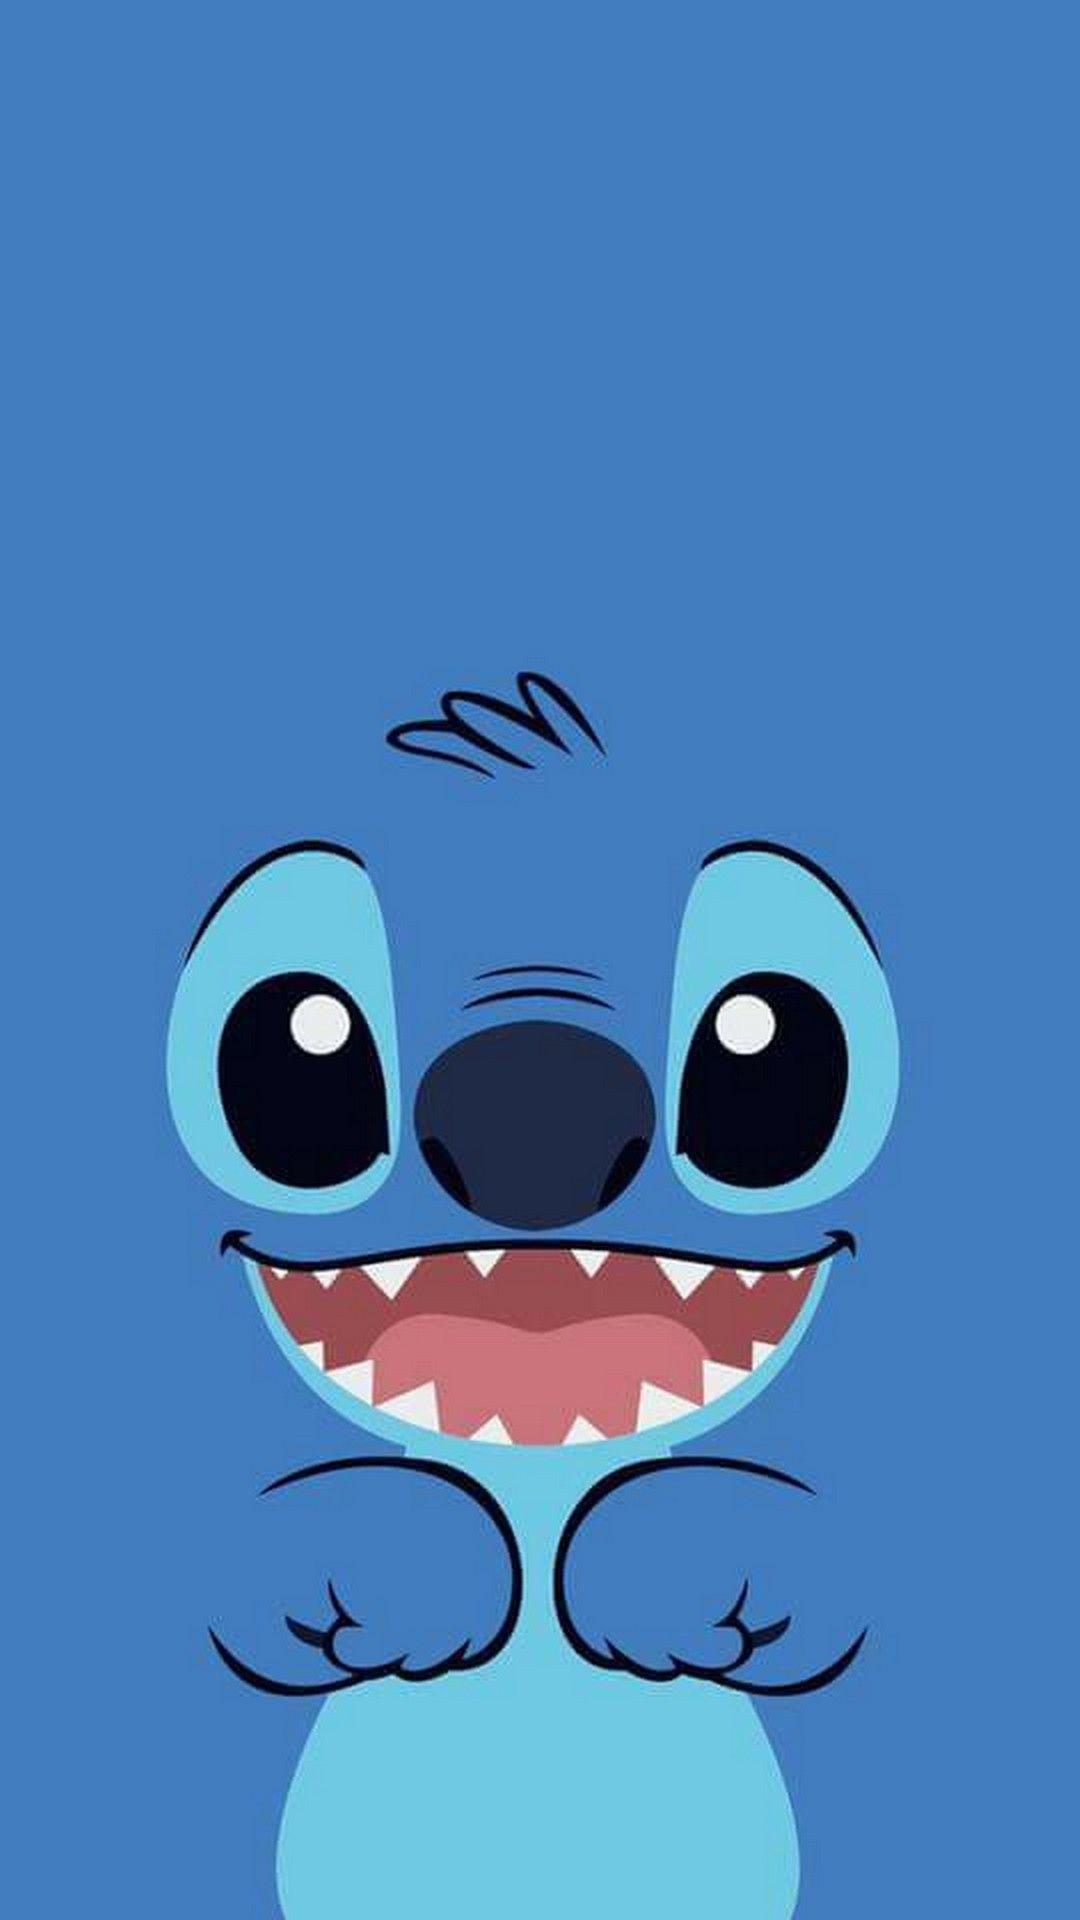 Best Phone Cartoon Wallpapers Posted By Samantha Mercado